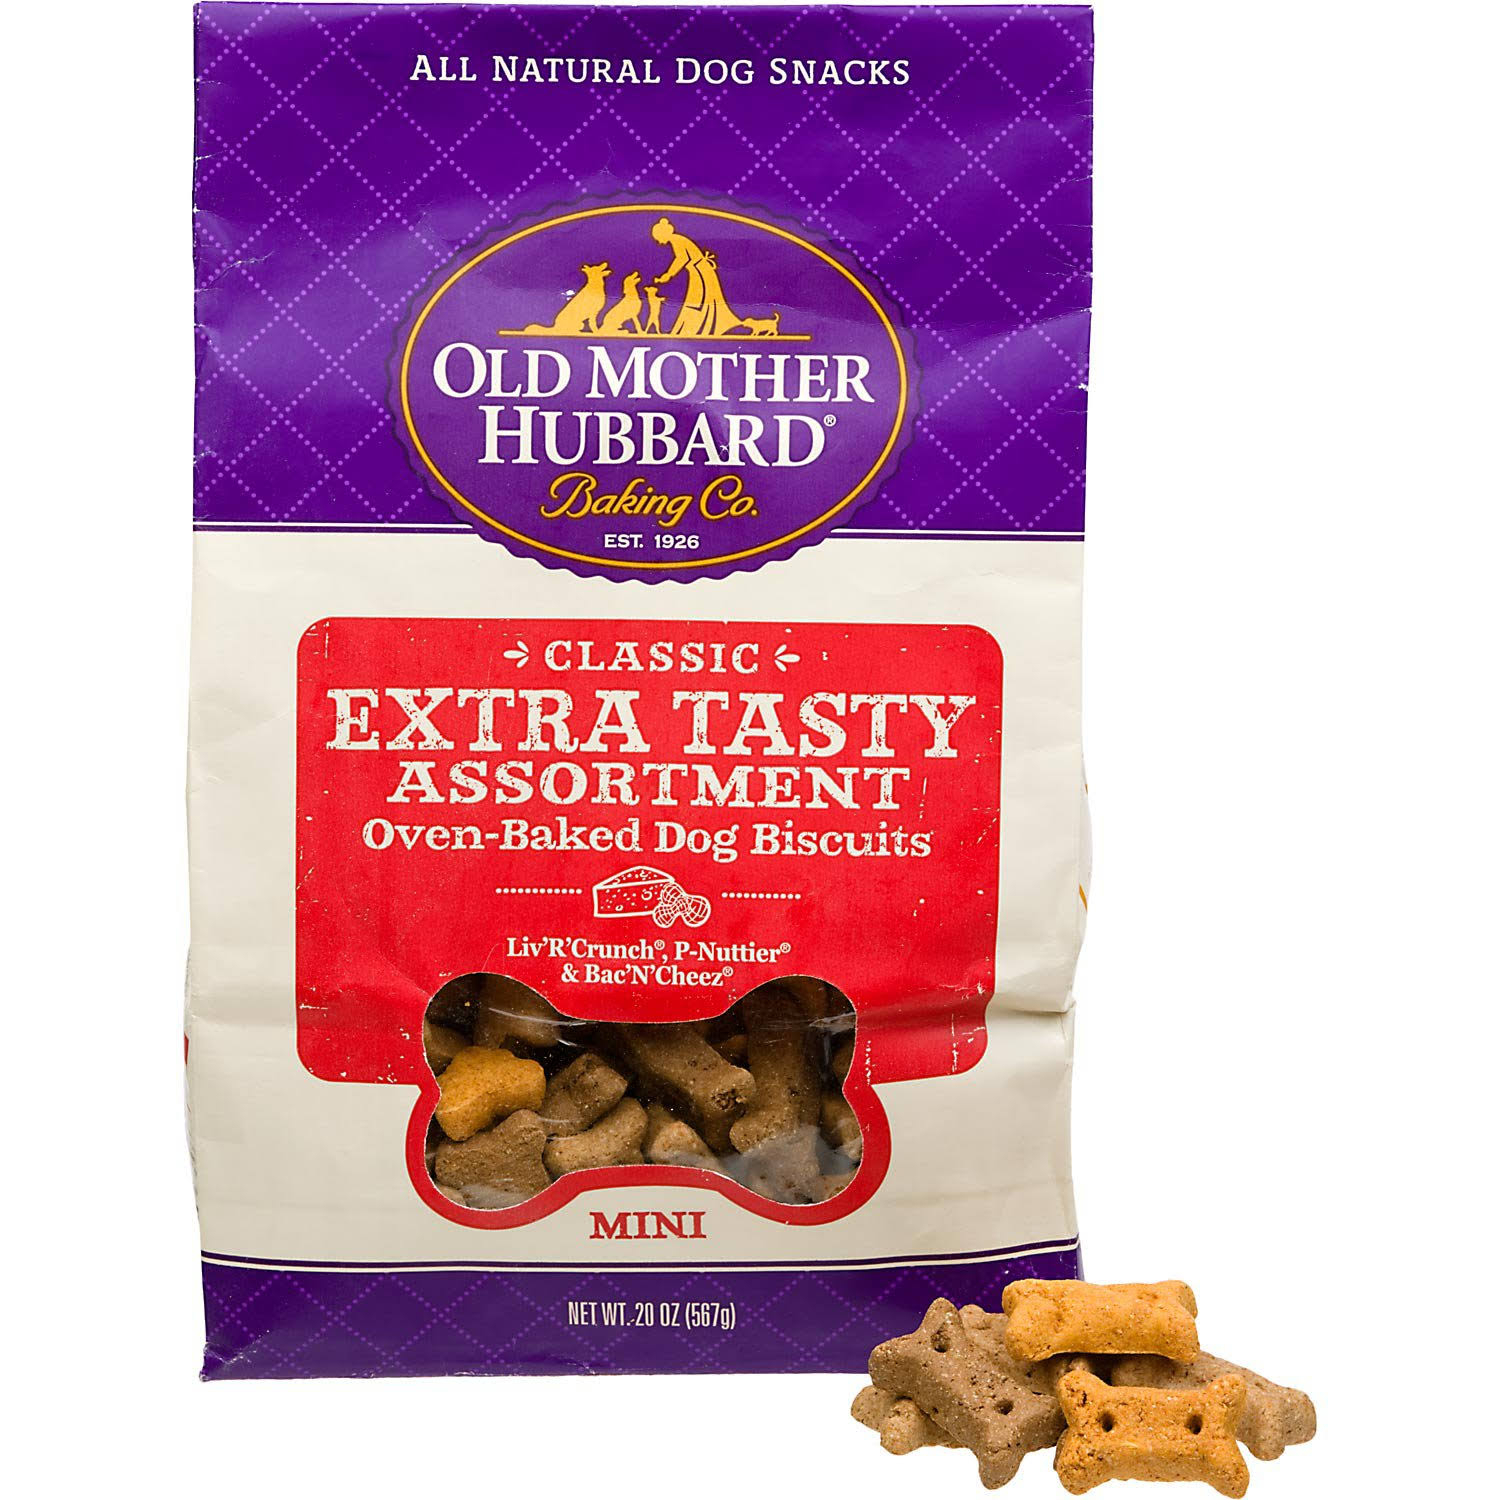 Old Mother Hubbard Crunchy Classic Snacks For Dogs - Mini, Extra Tasty Assortment, 20oz